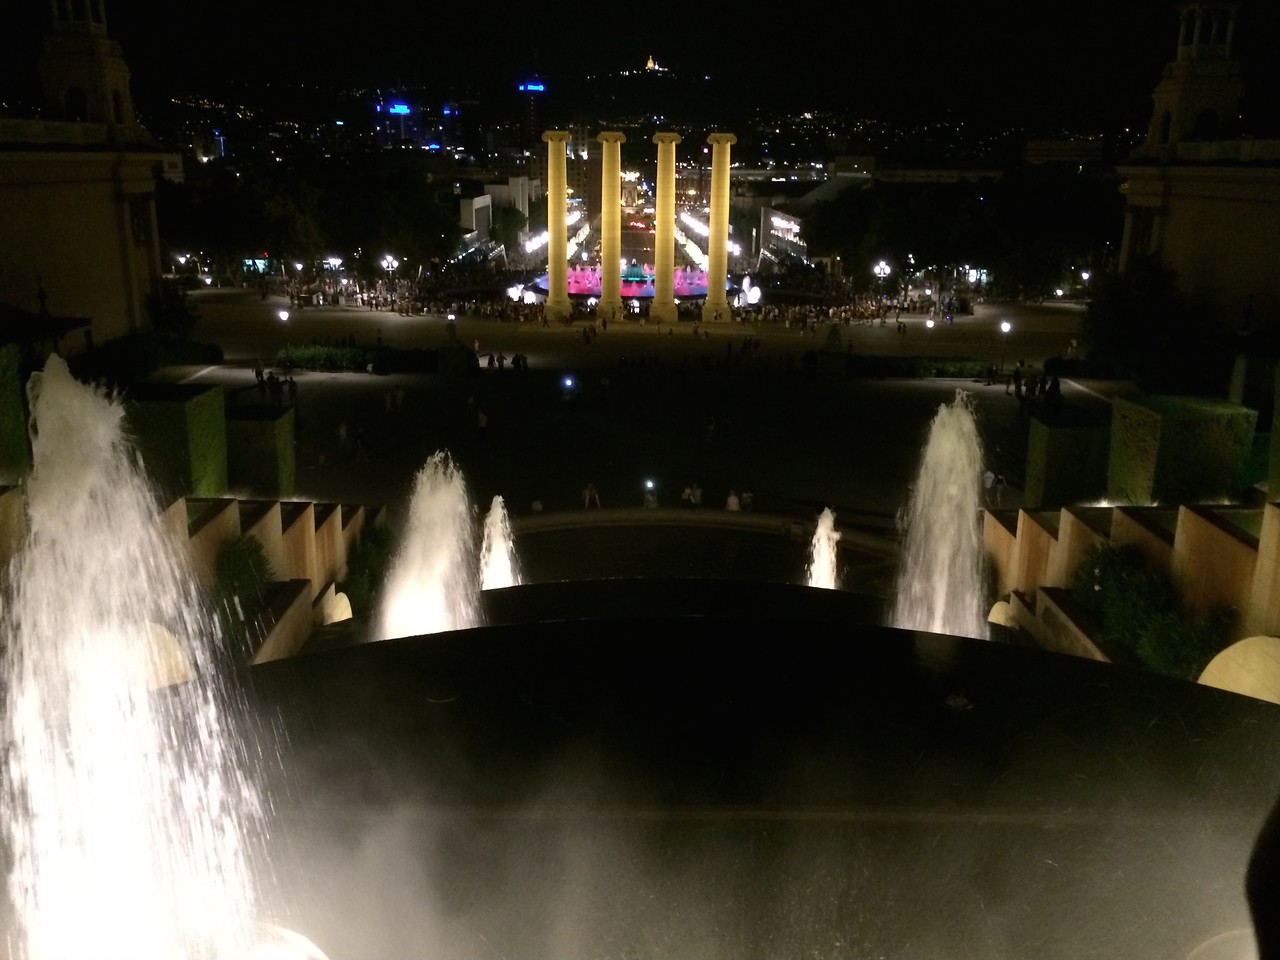 View from the top of the fountains below.